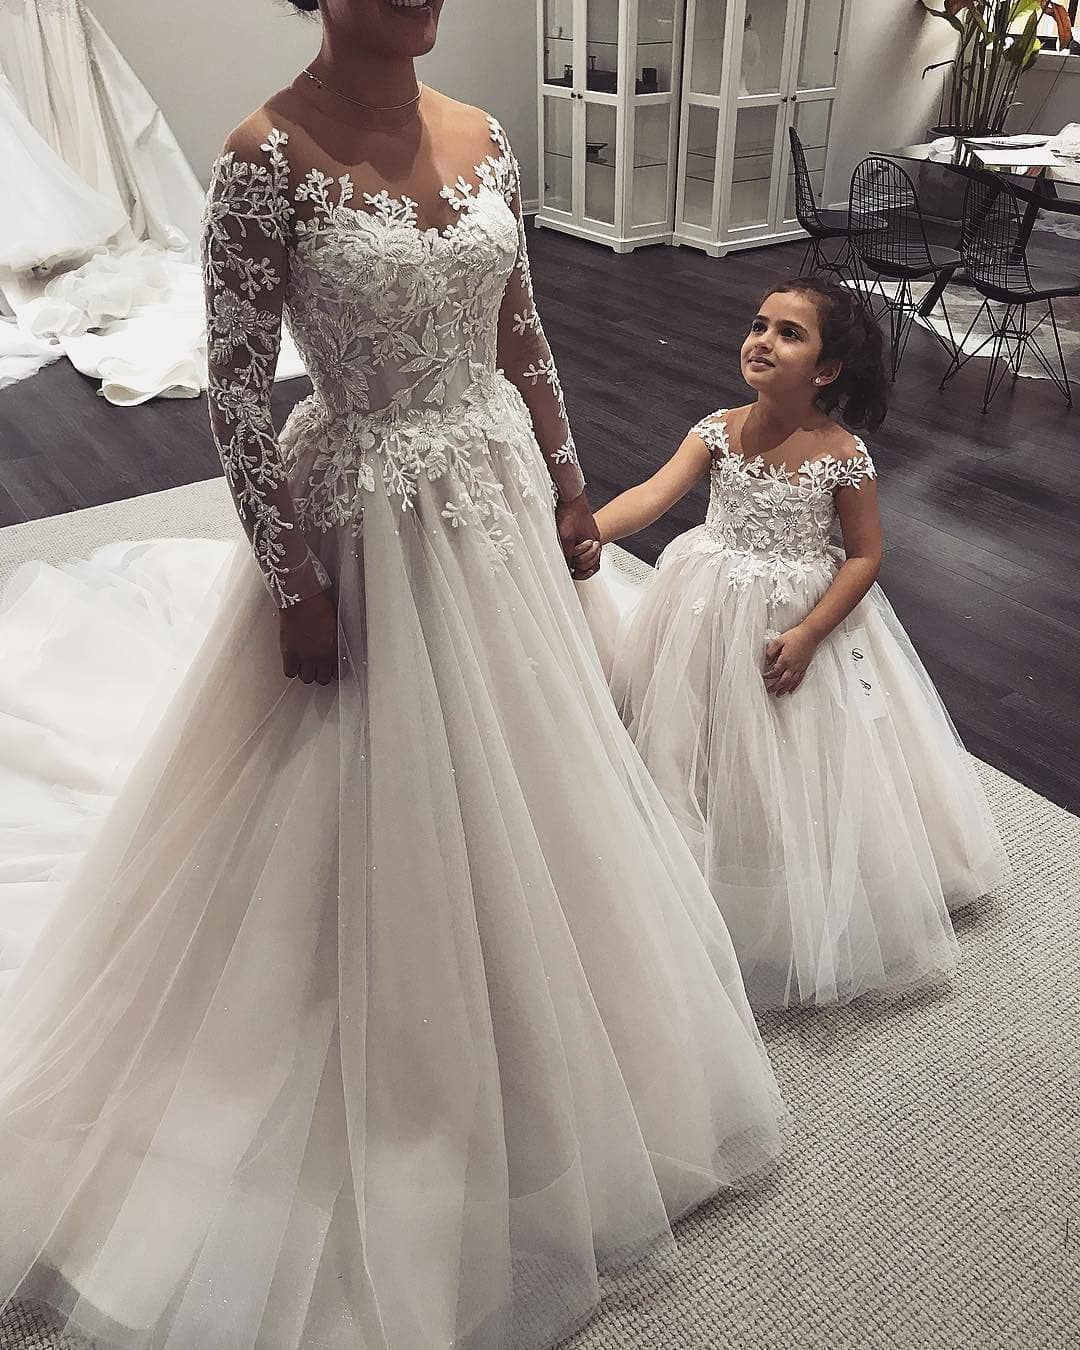 Aline illusion neck long sleeves tulle wedding dress with appliques